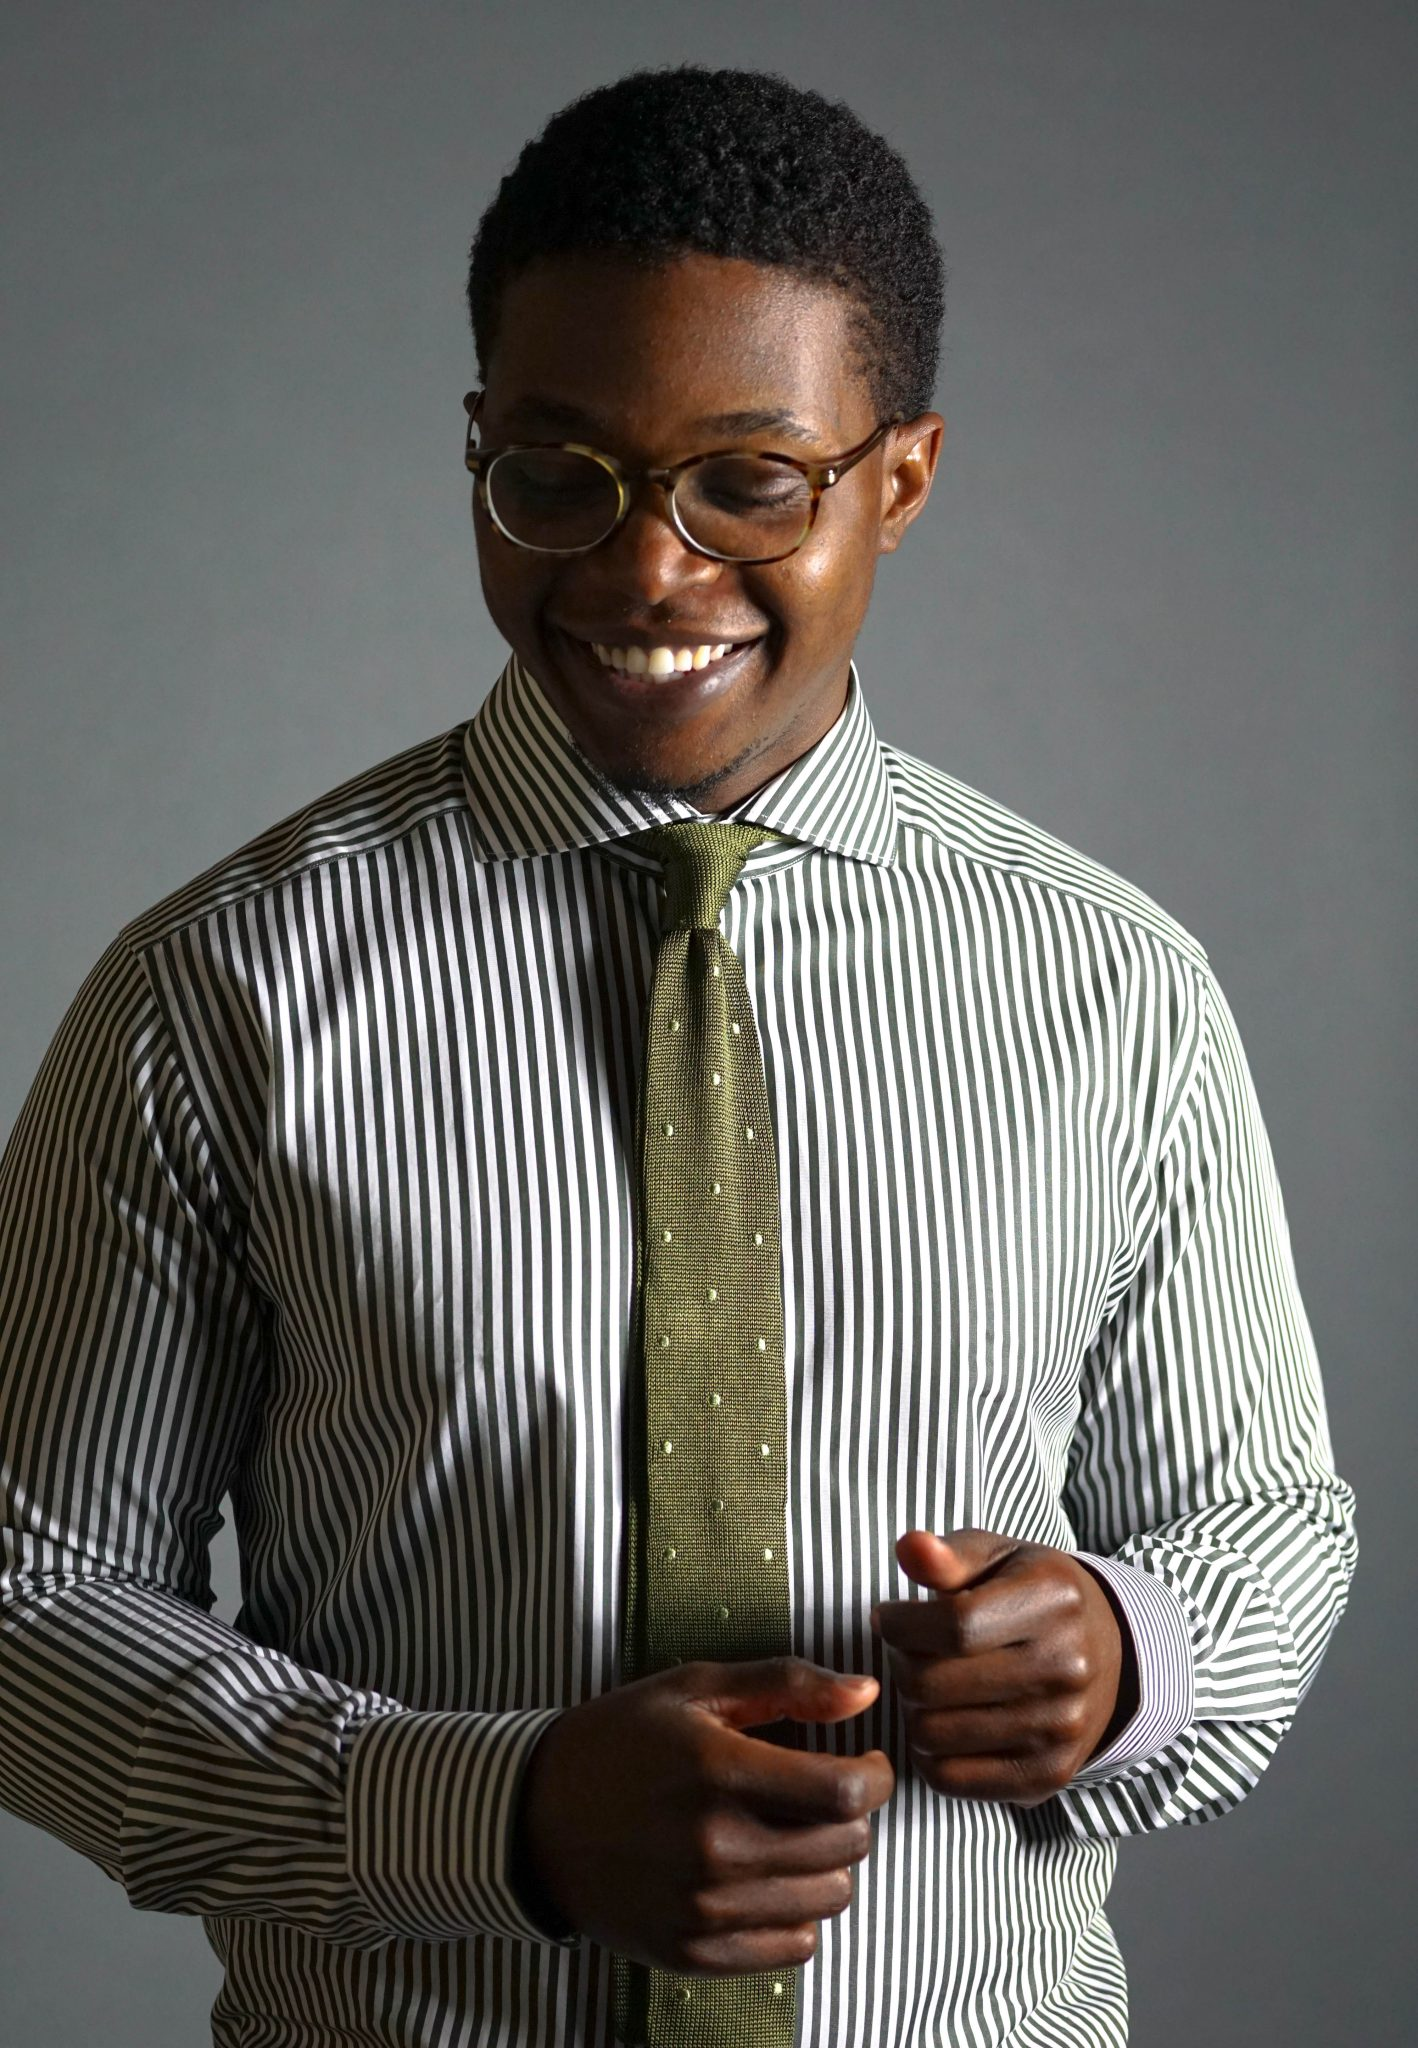 Dapper-Advisor-Akil-McLeod-black-man-african-american-smiling-soxfords-tie-stripe-shirt-knit-tie-smile